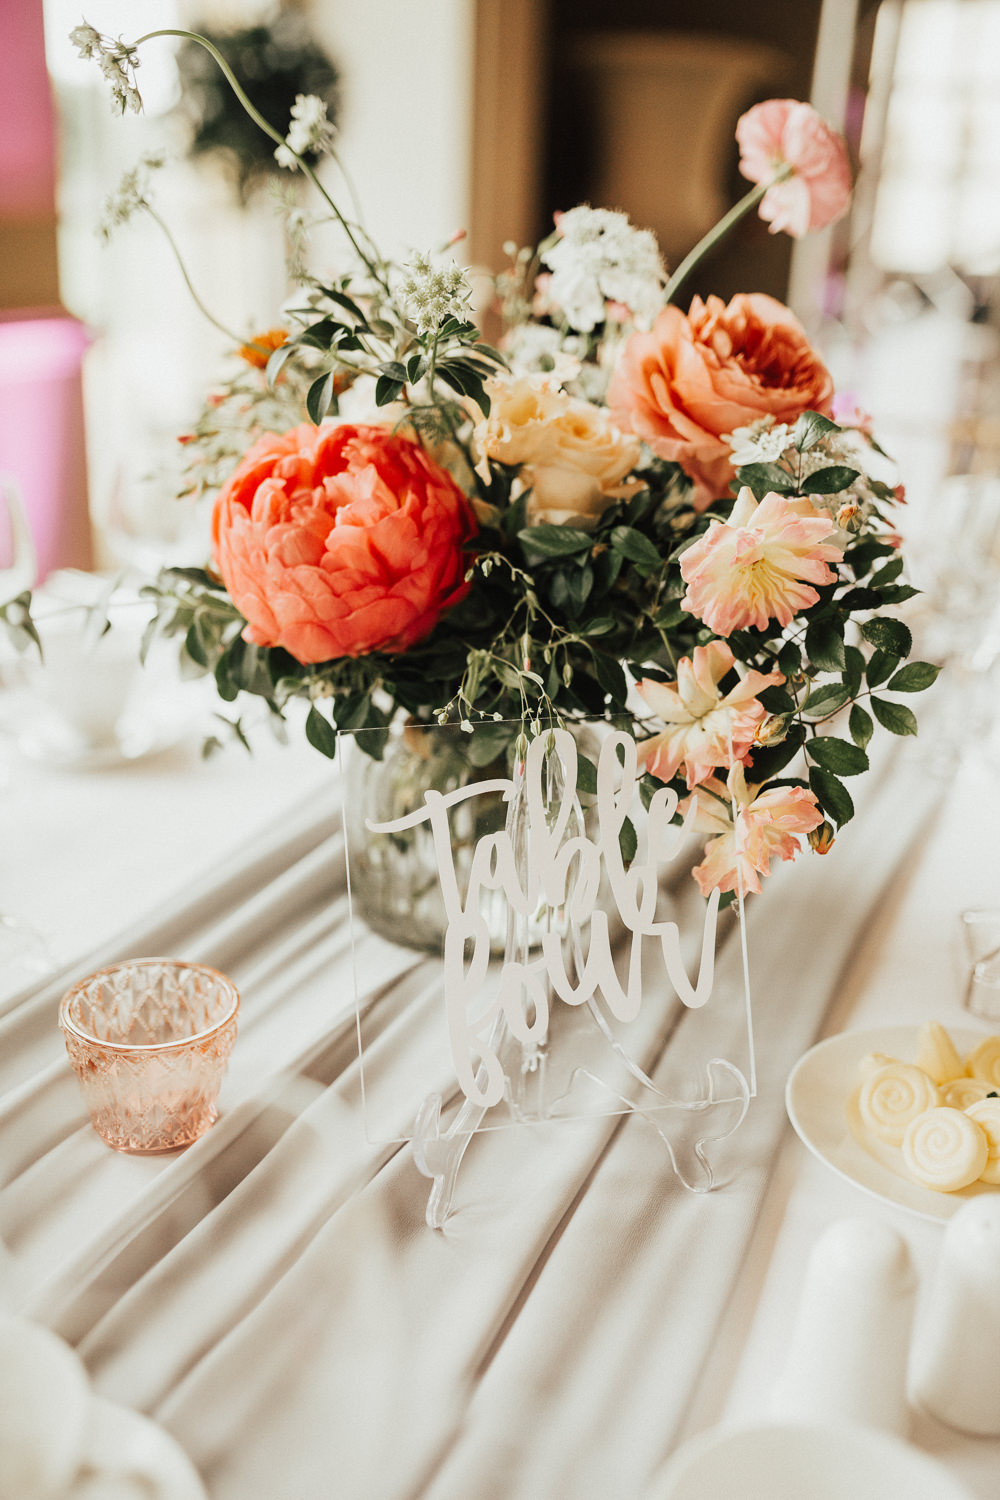 Perspex Acrylic Table Number Sign Table Flowers Coral Peony Peonies Rose Pink Ranunculus Eucalyptus Ribbon Stubton Hall Wedding Darina Stoda Photography